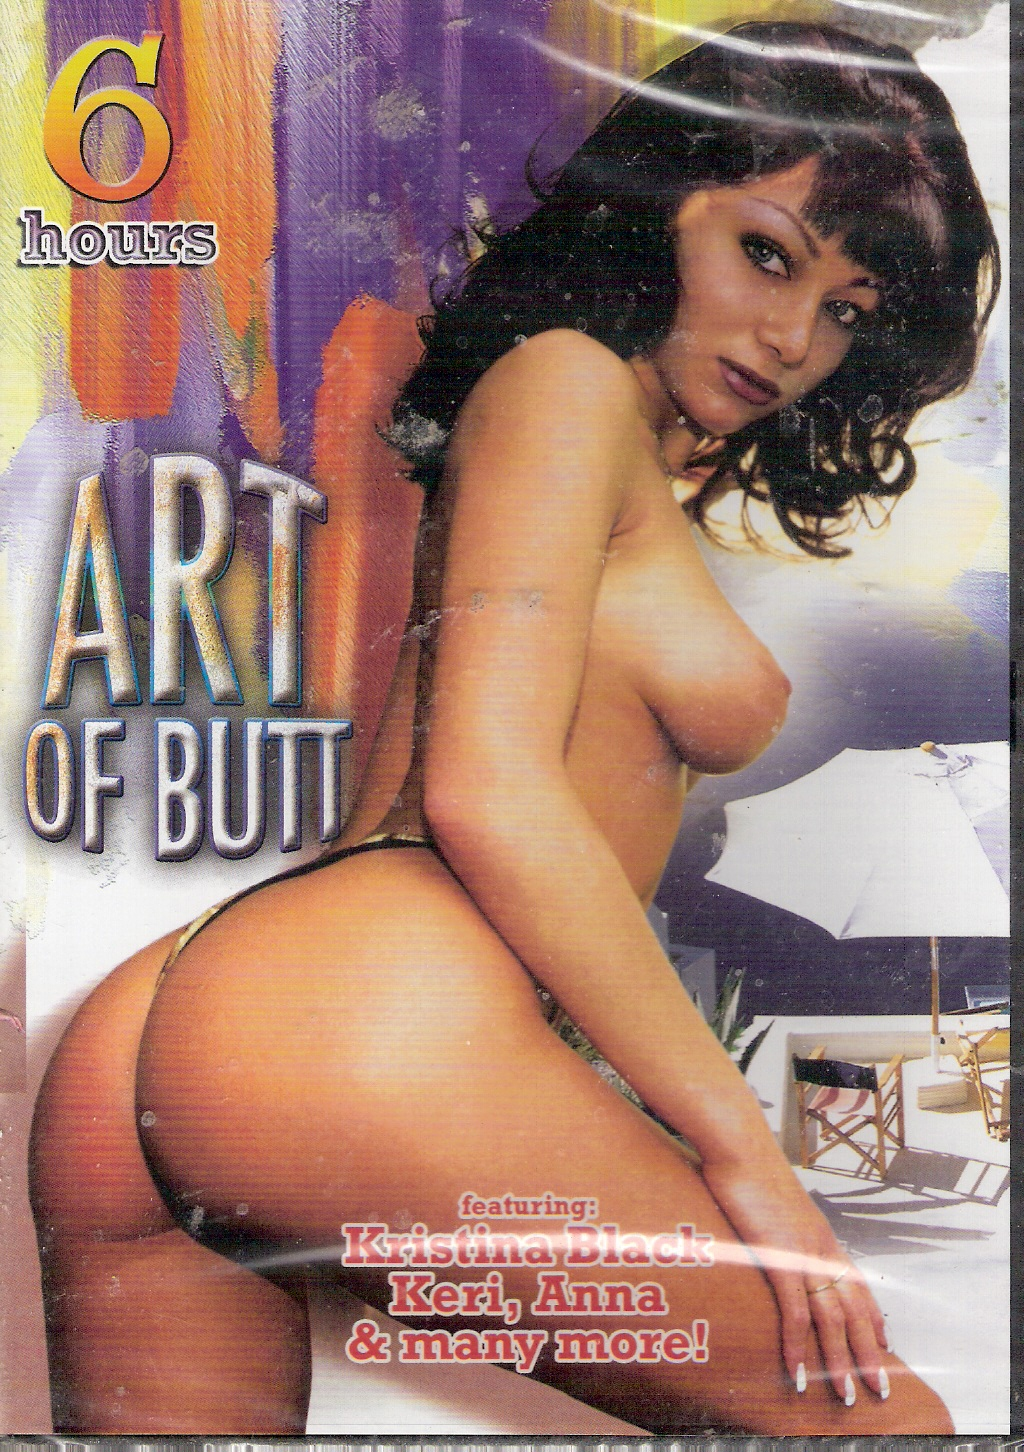 Art of Butt